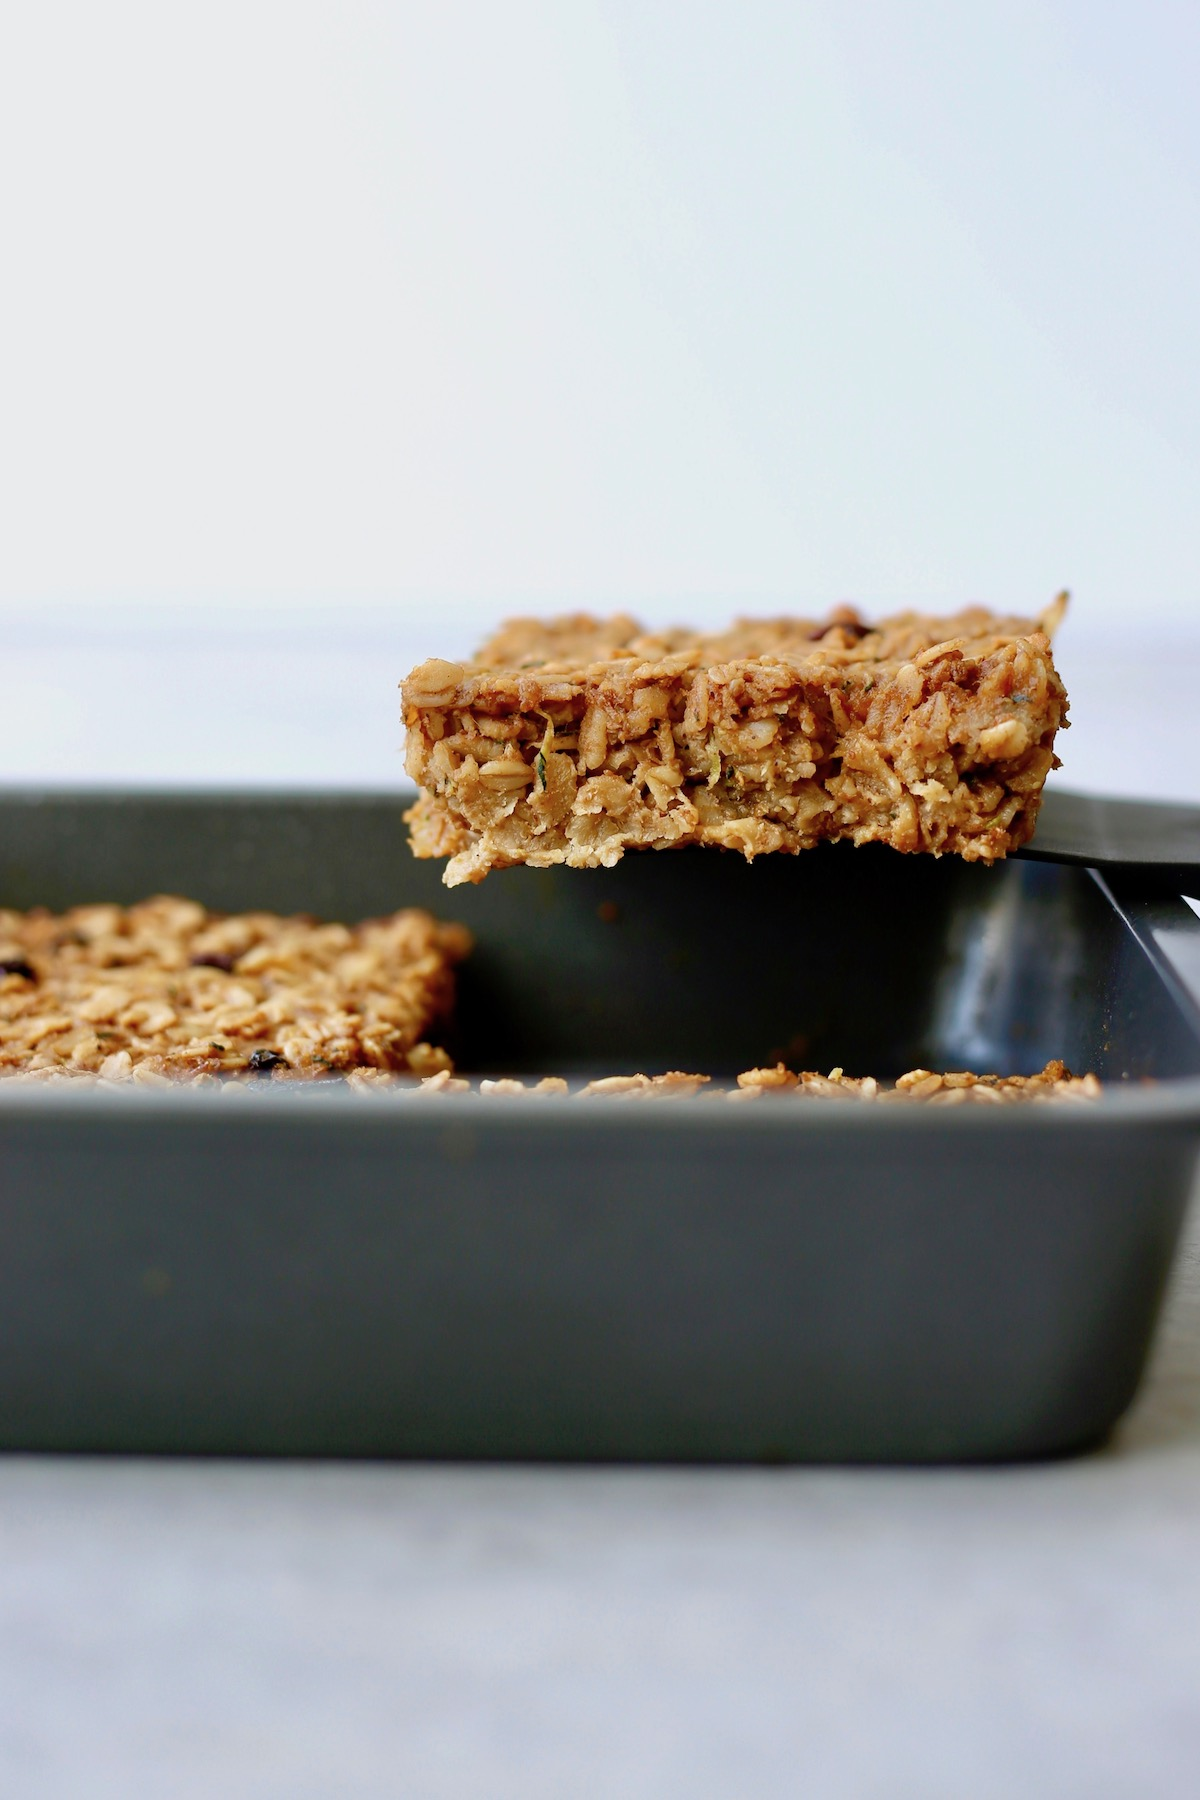 a thick slice of zucchini bread baked oatmeal being lifted out of a baking dish